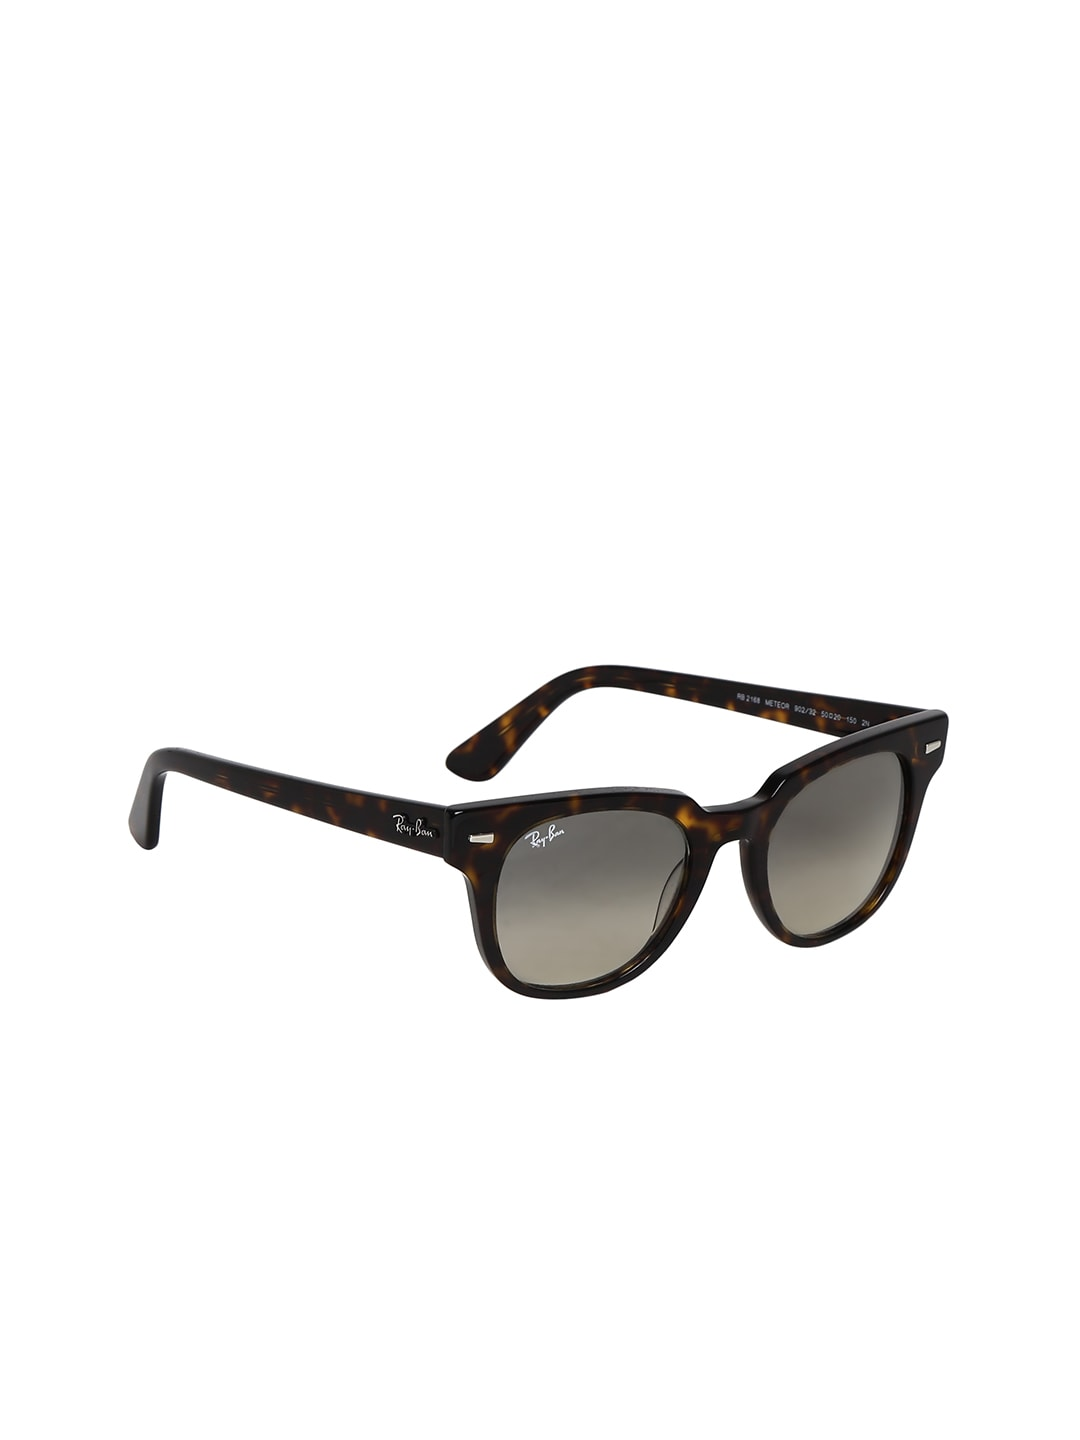 f74abc7442f Wayfarer Sunglasses - Buy Wayfarers Sunglasses Online